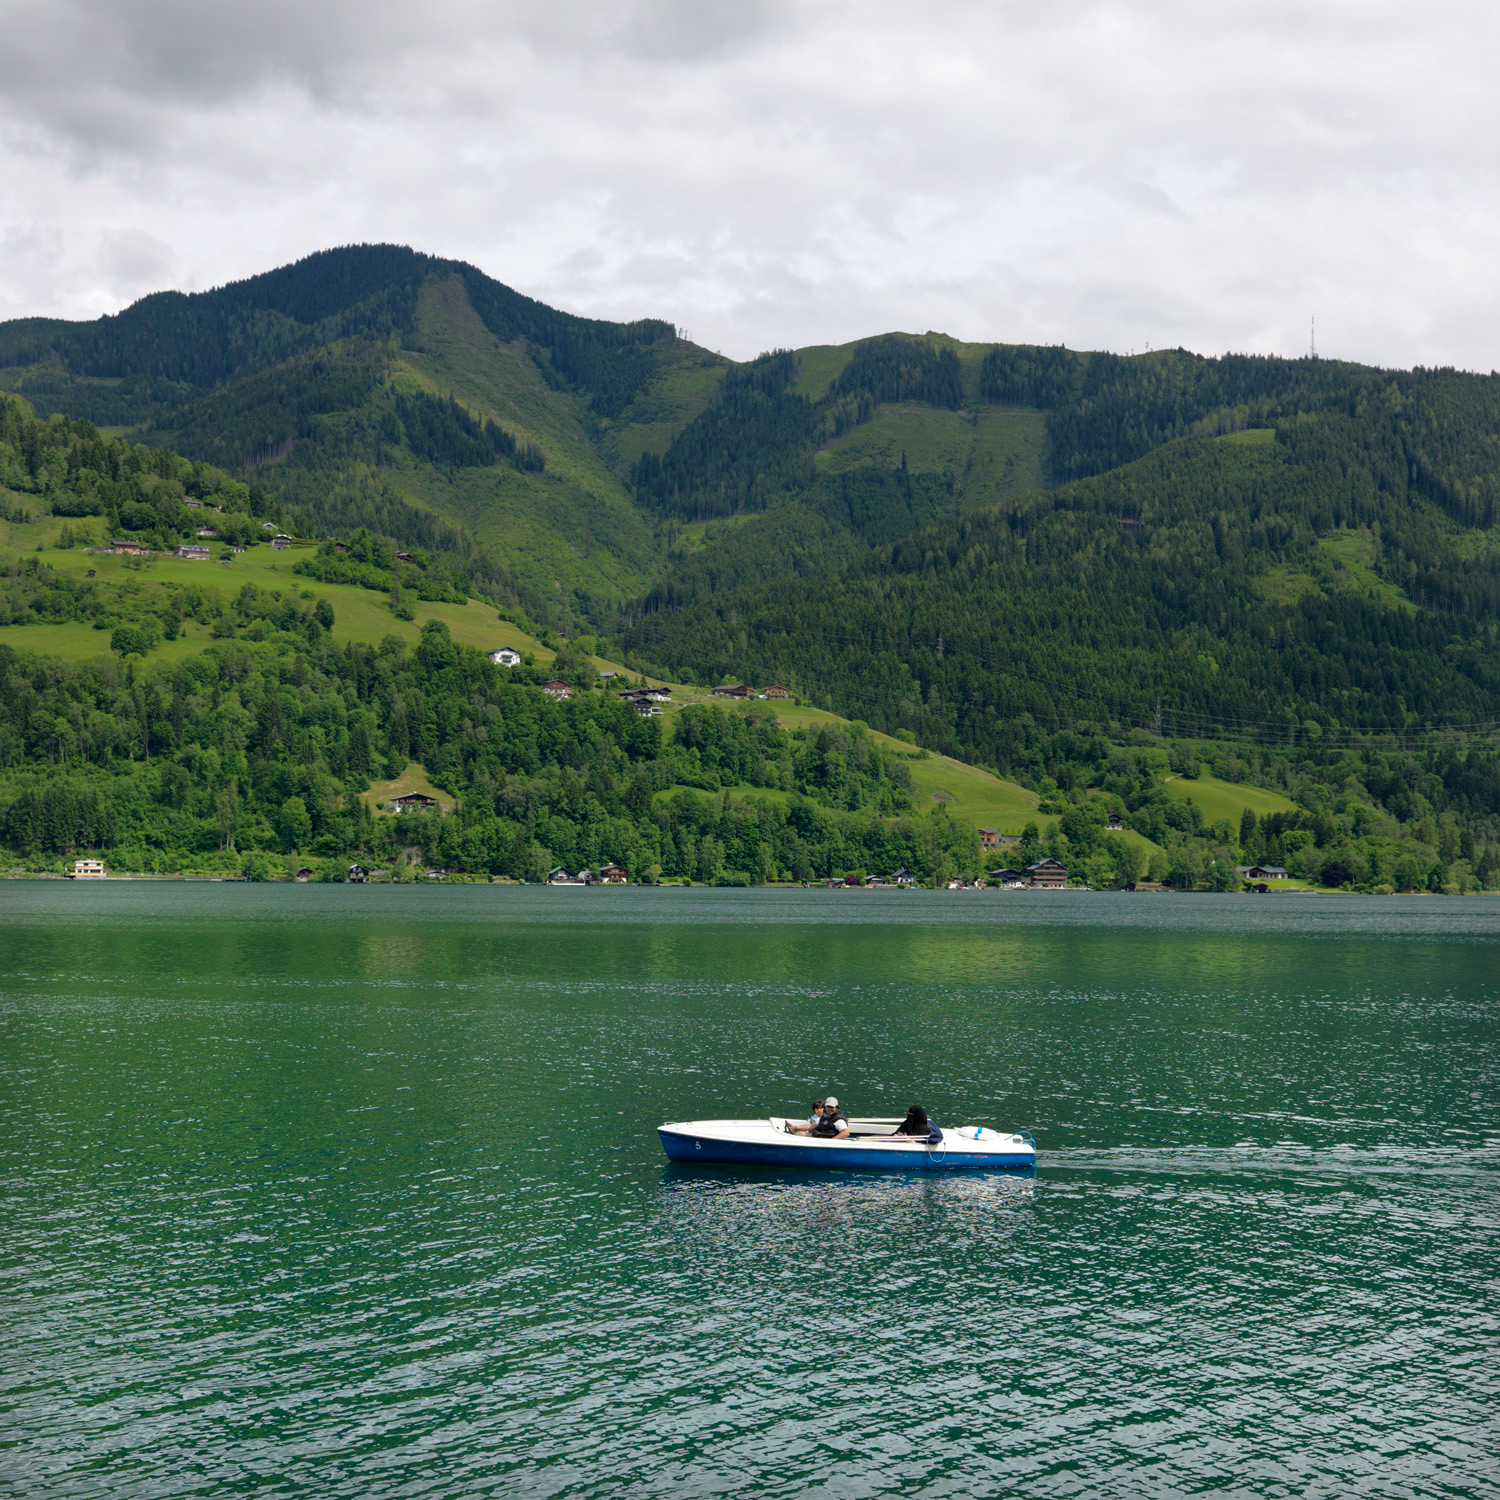 zell am see muslim personals Two years later it was reported that at least one third of austria's annual intake of  76,000 arab tourists were visiting zell am see and that they.